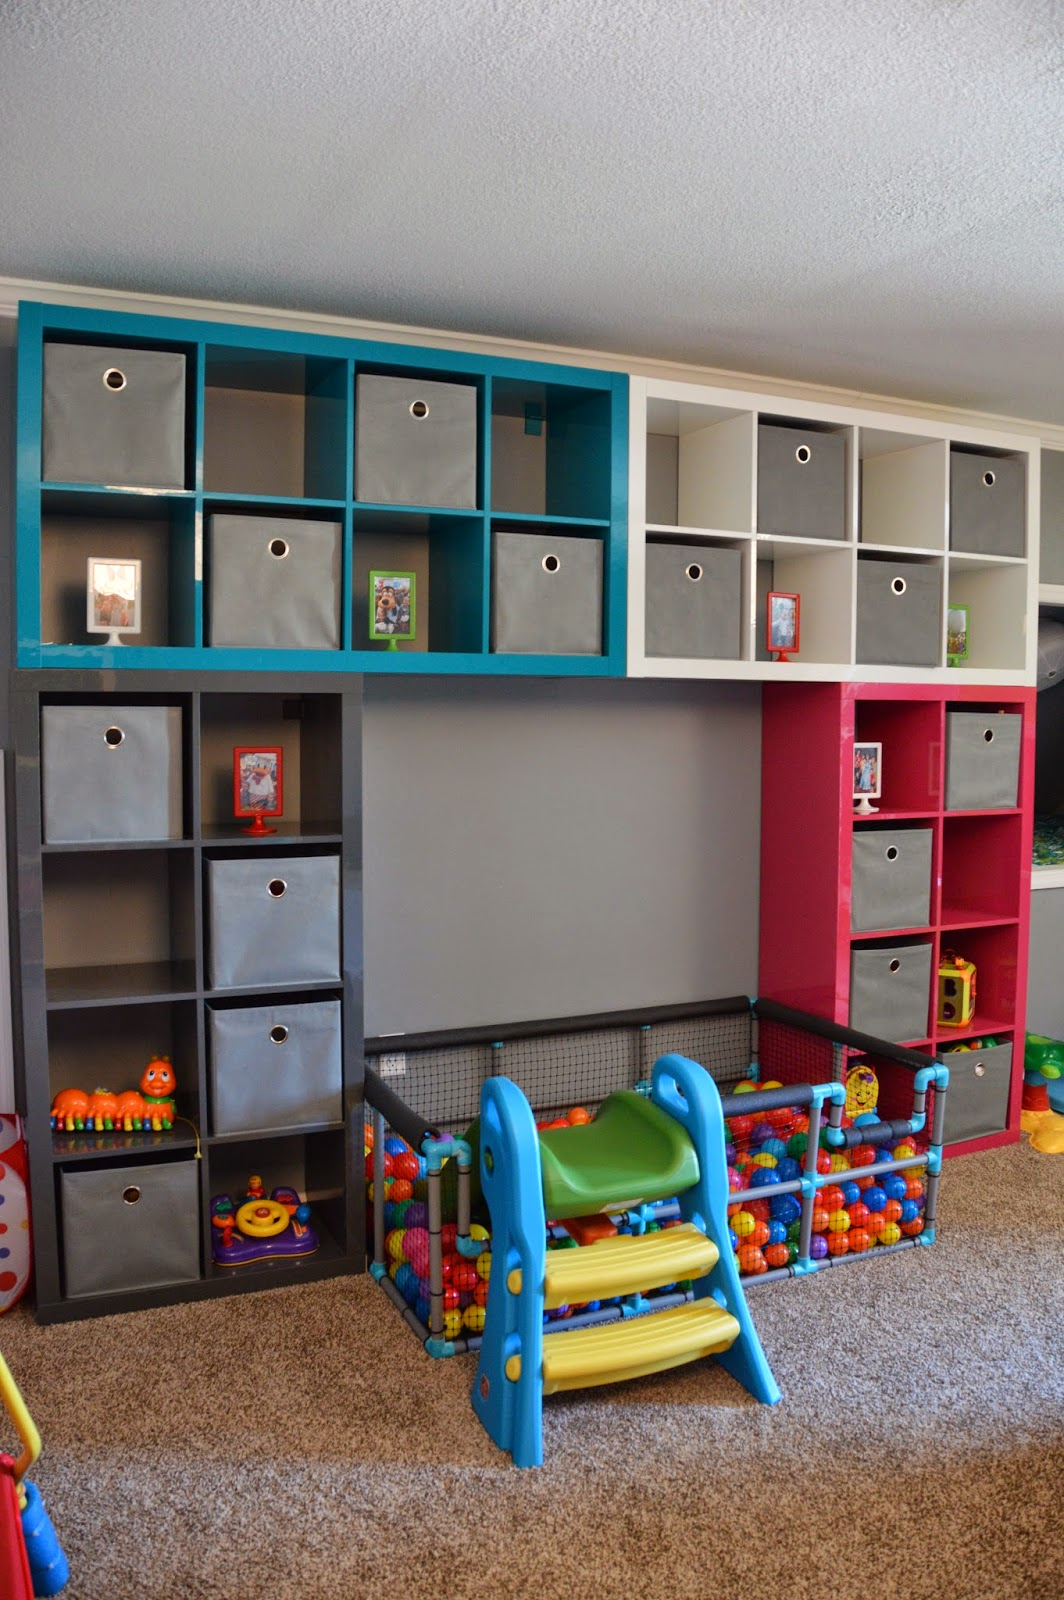 The Journey Of Parenthood Tour Of Our Home Playroom